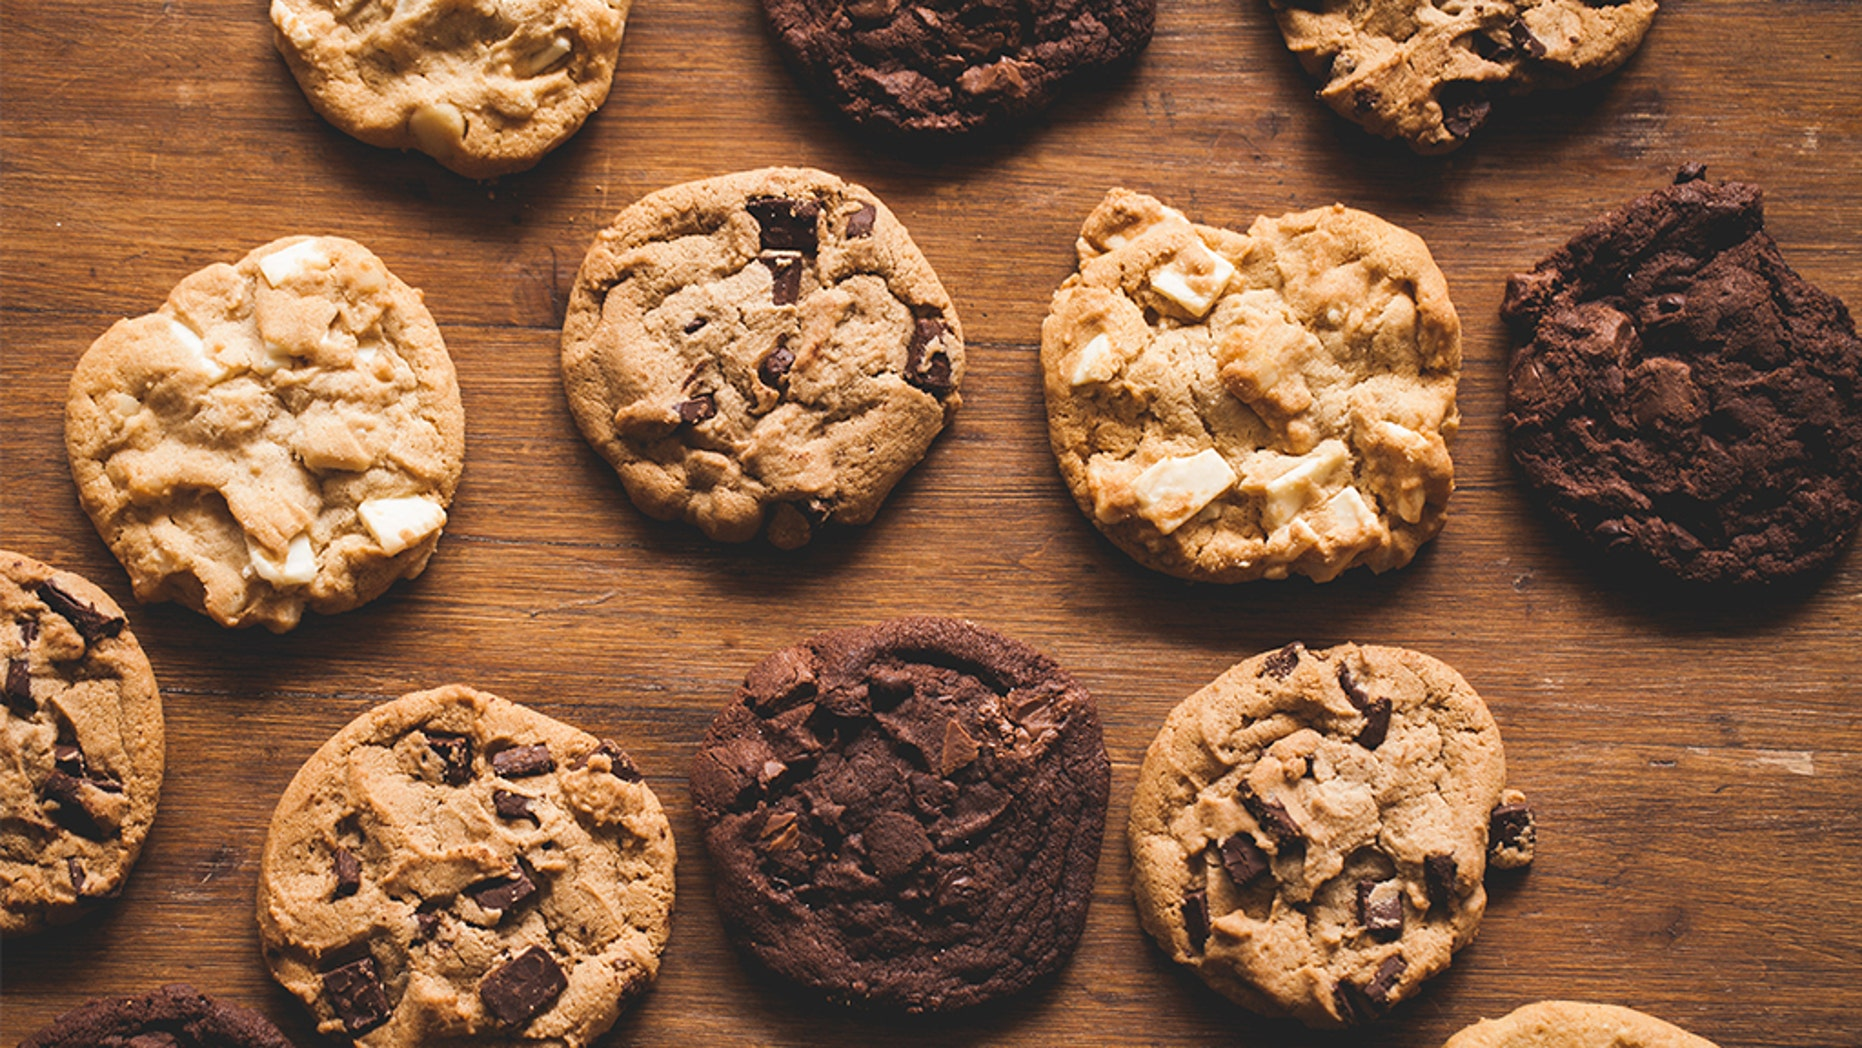 CDC warns: Say no to raw cookie dough